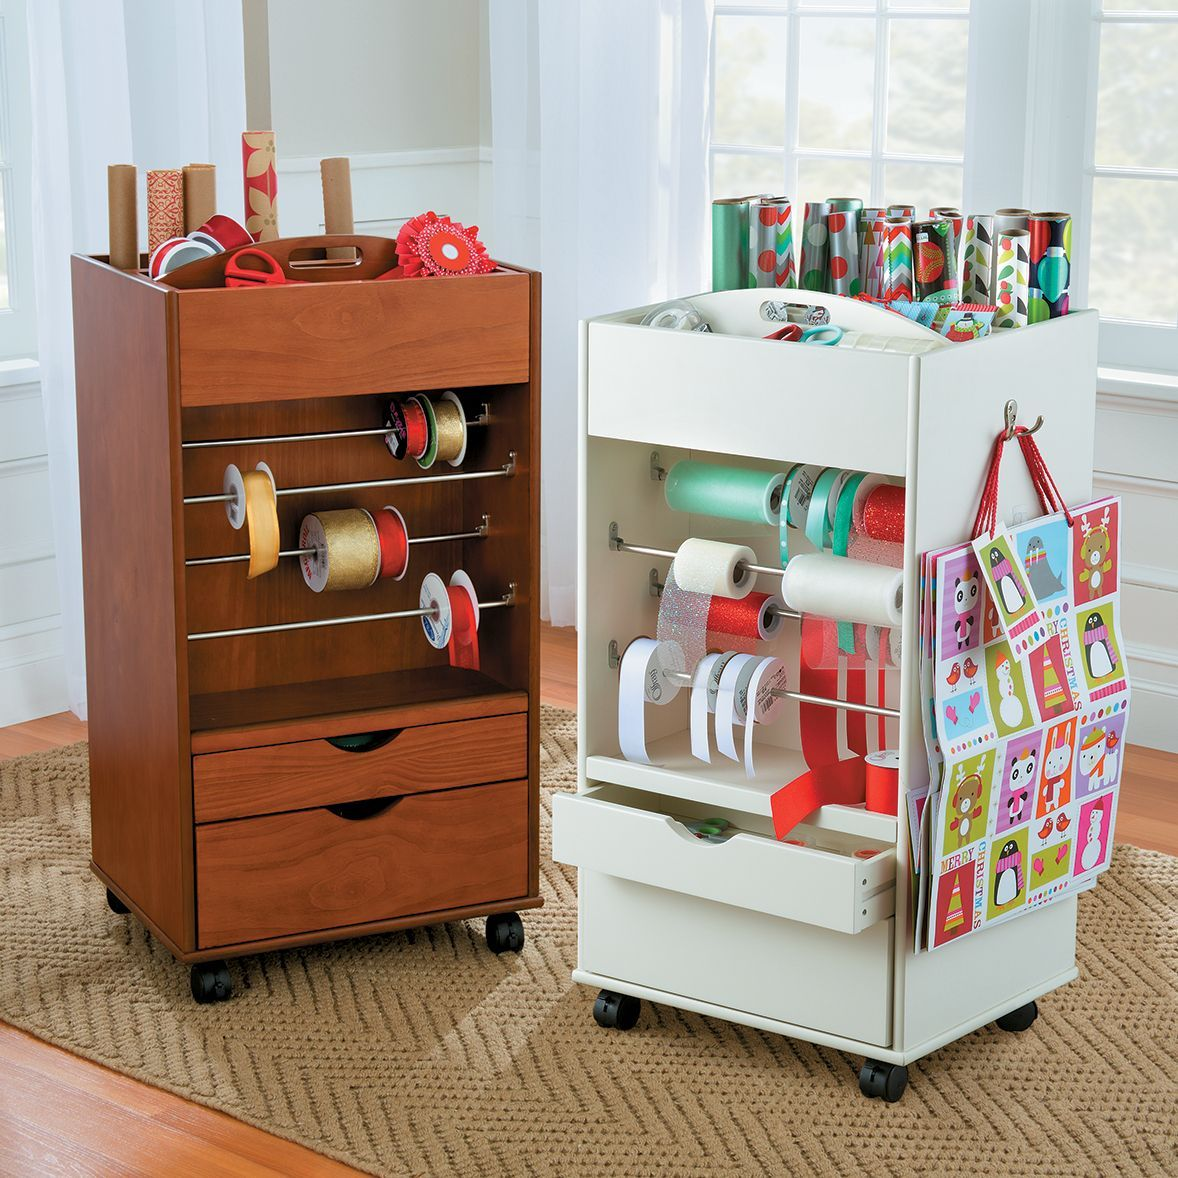 Genial Portable Gift Wrap Station U2013 Pack This Convenient Wrapping Paper Storage  Unit Full With Wrapping Paper Rolls, Ribbons And Gift Bags.